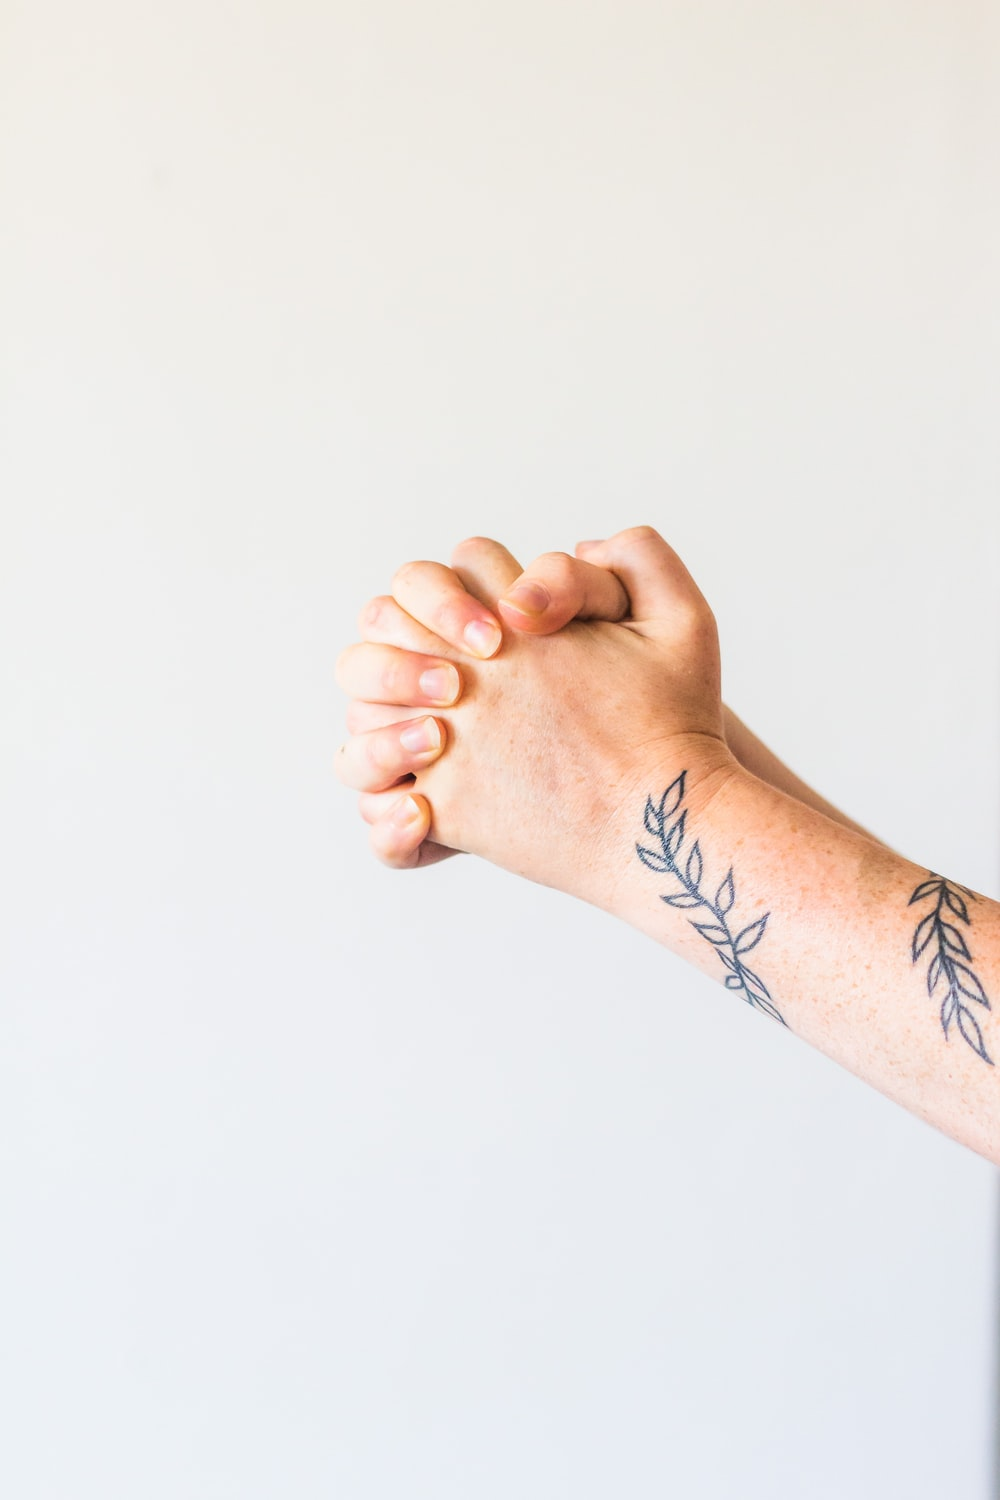 person with black and red tattoo on right hand